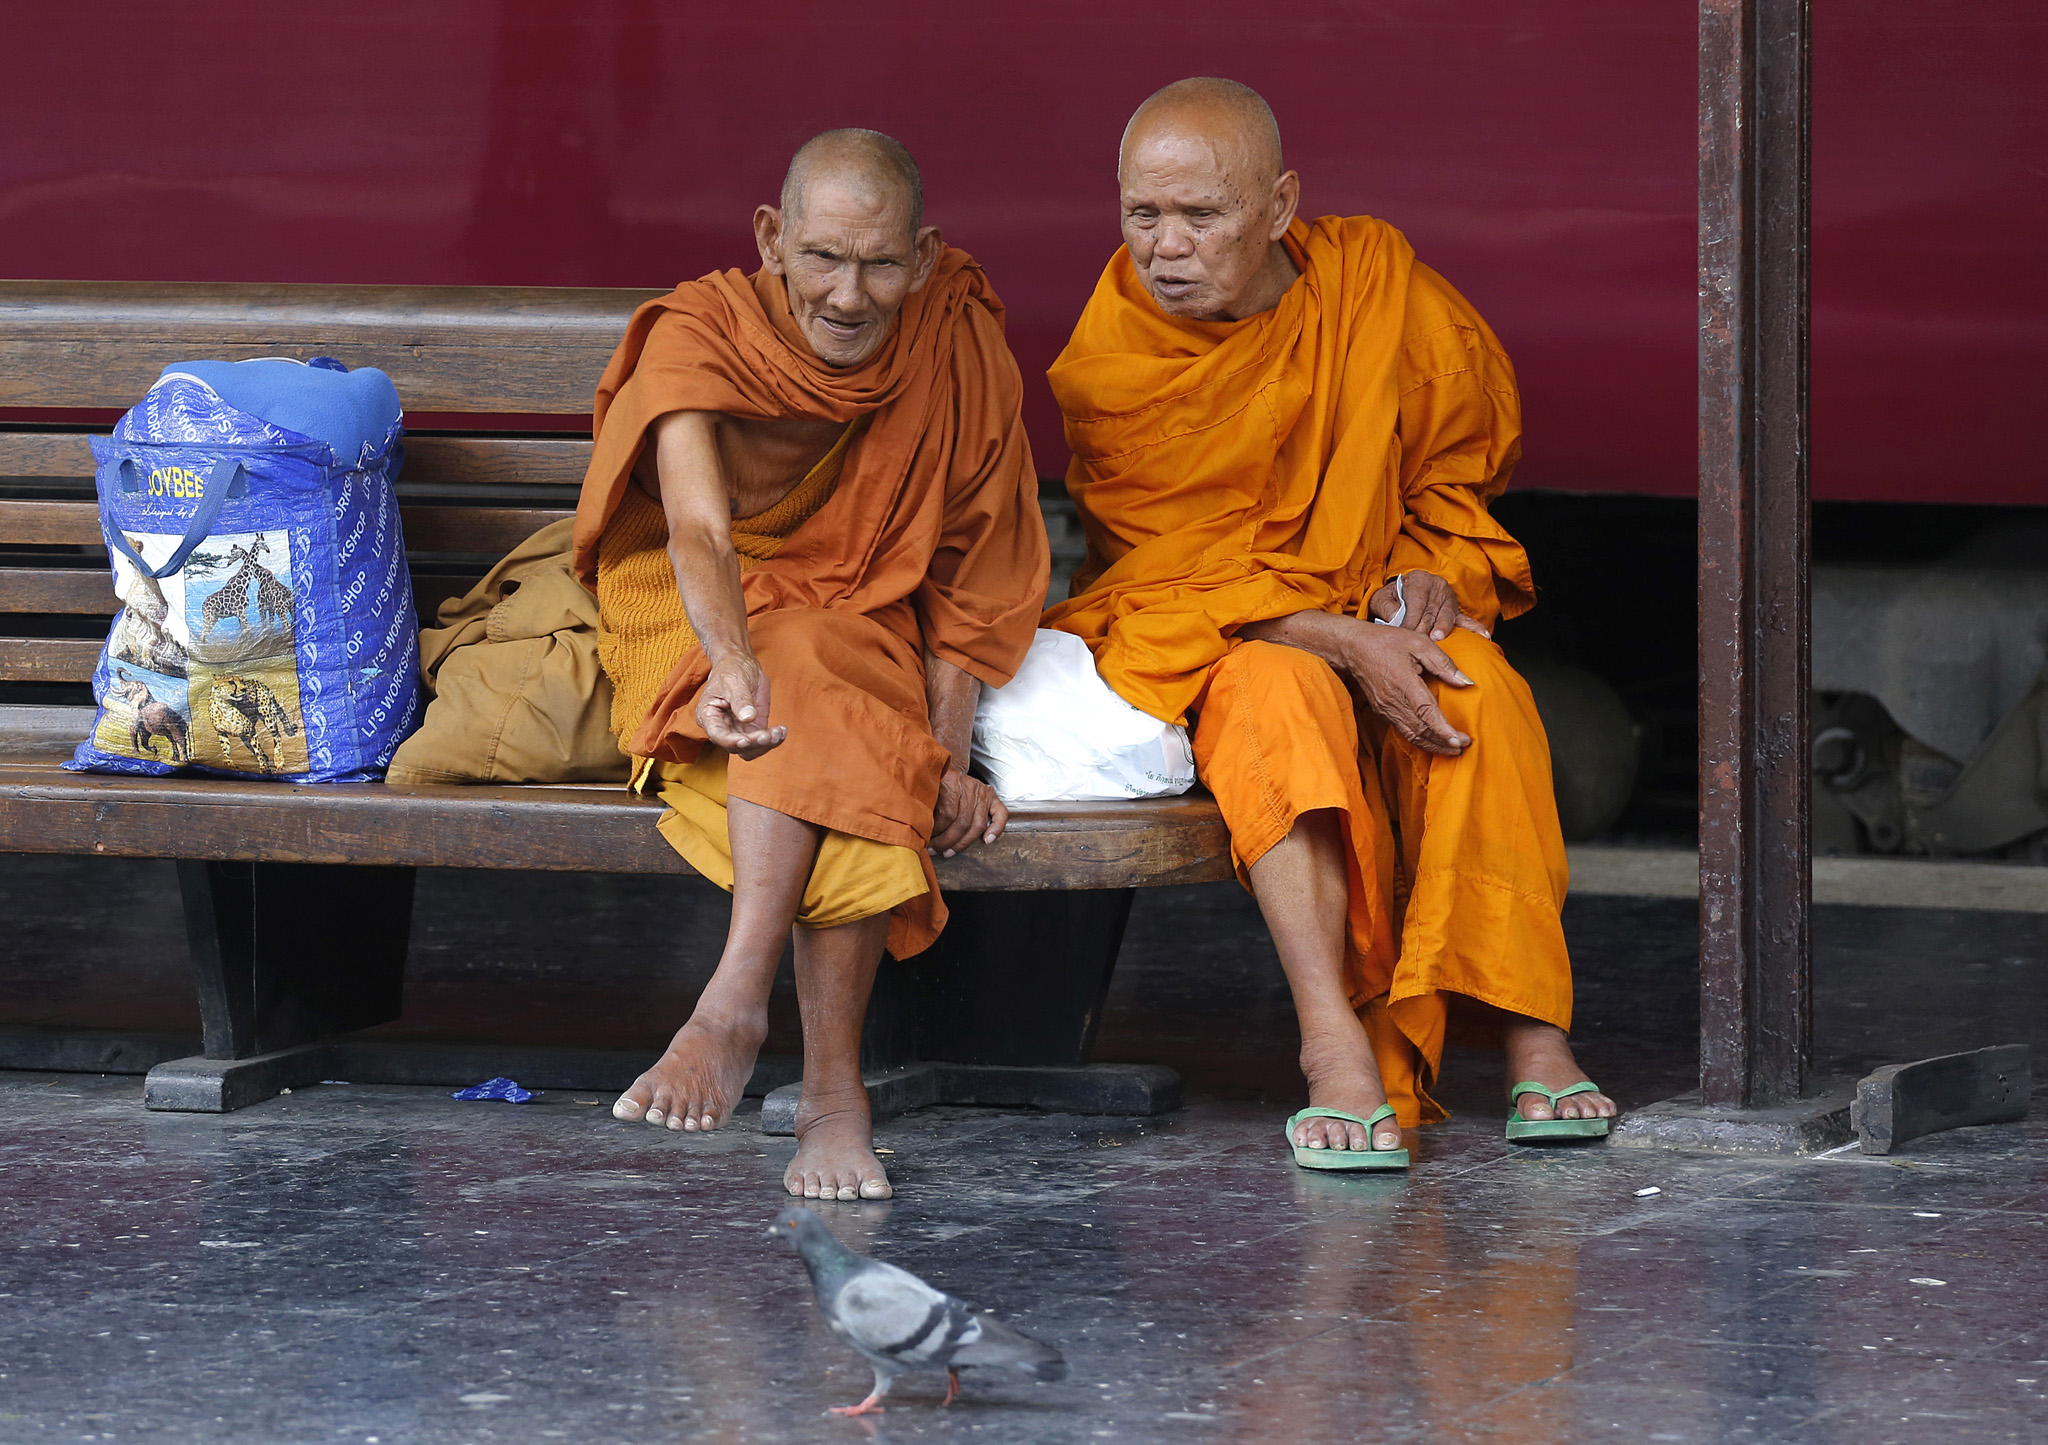 Thai Buddhist monks call a pigeon on platform at Hua Lampong railway station in Bangkok, Thailand, Thursday, Nov. 13, 2014.(AP Photo/Sakchai Lalit)